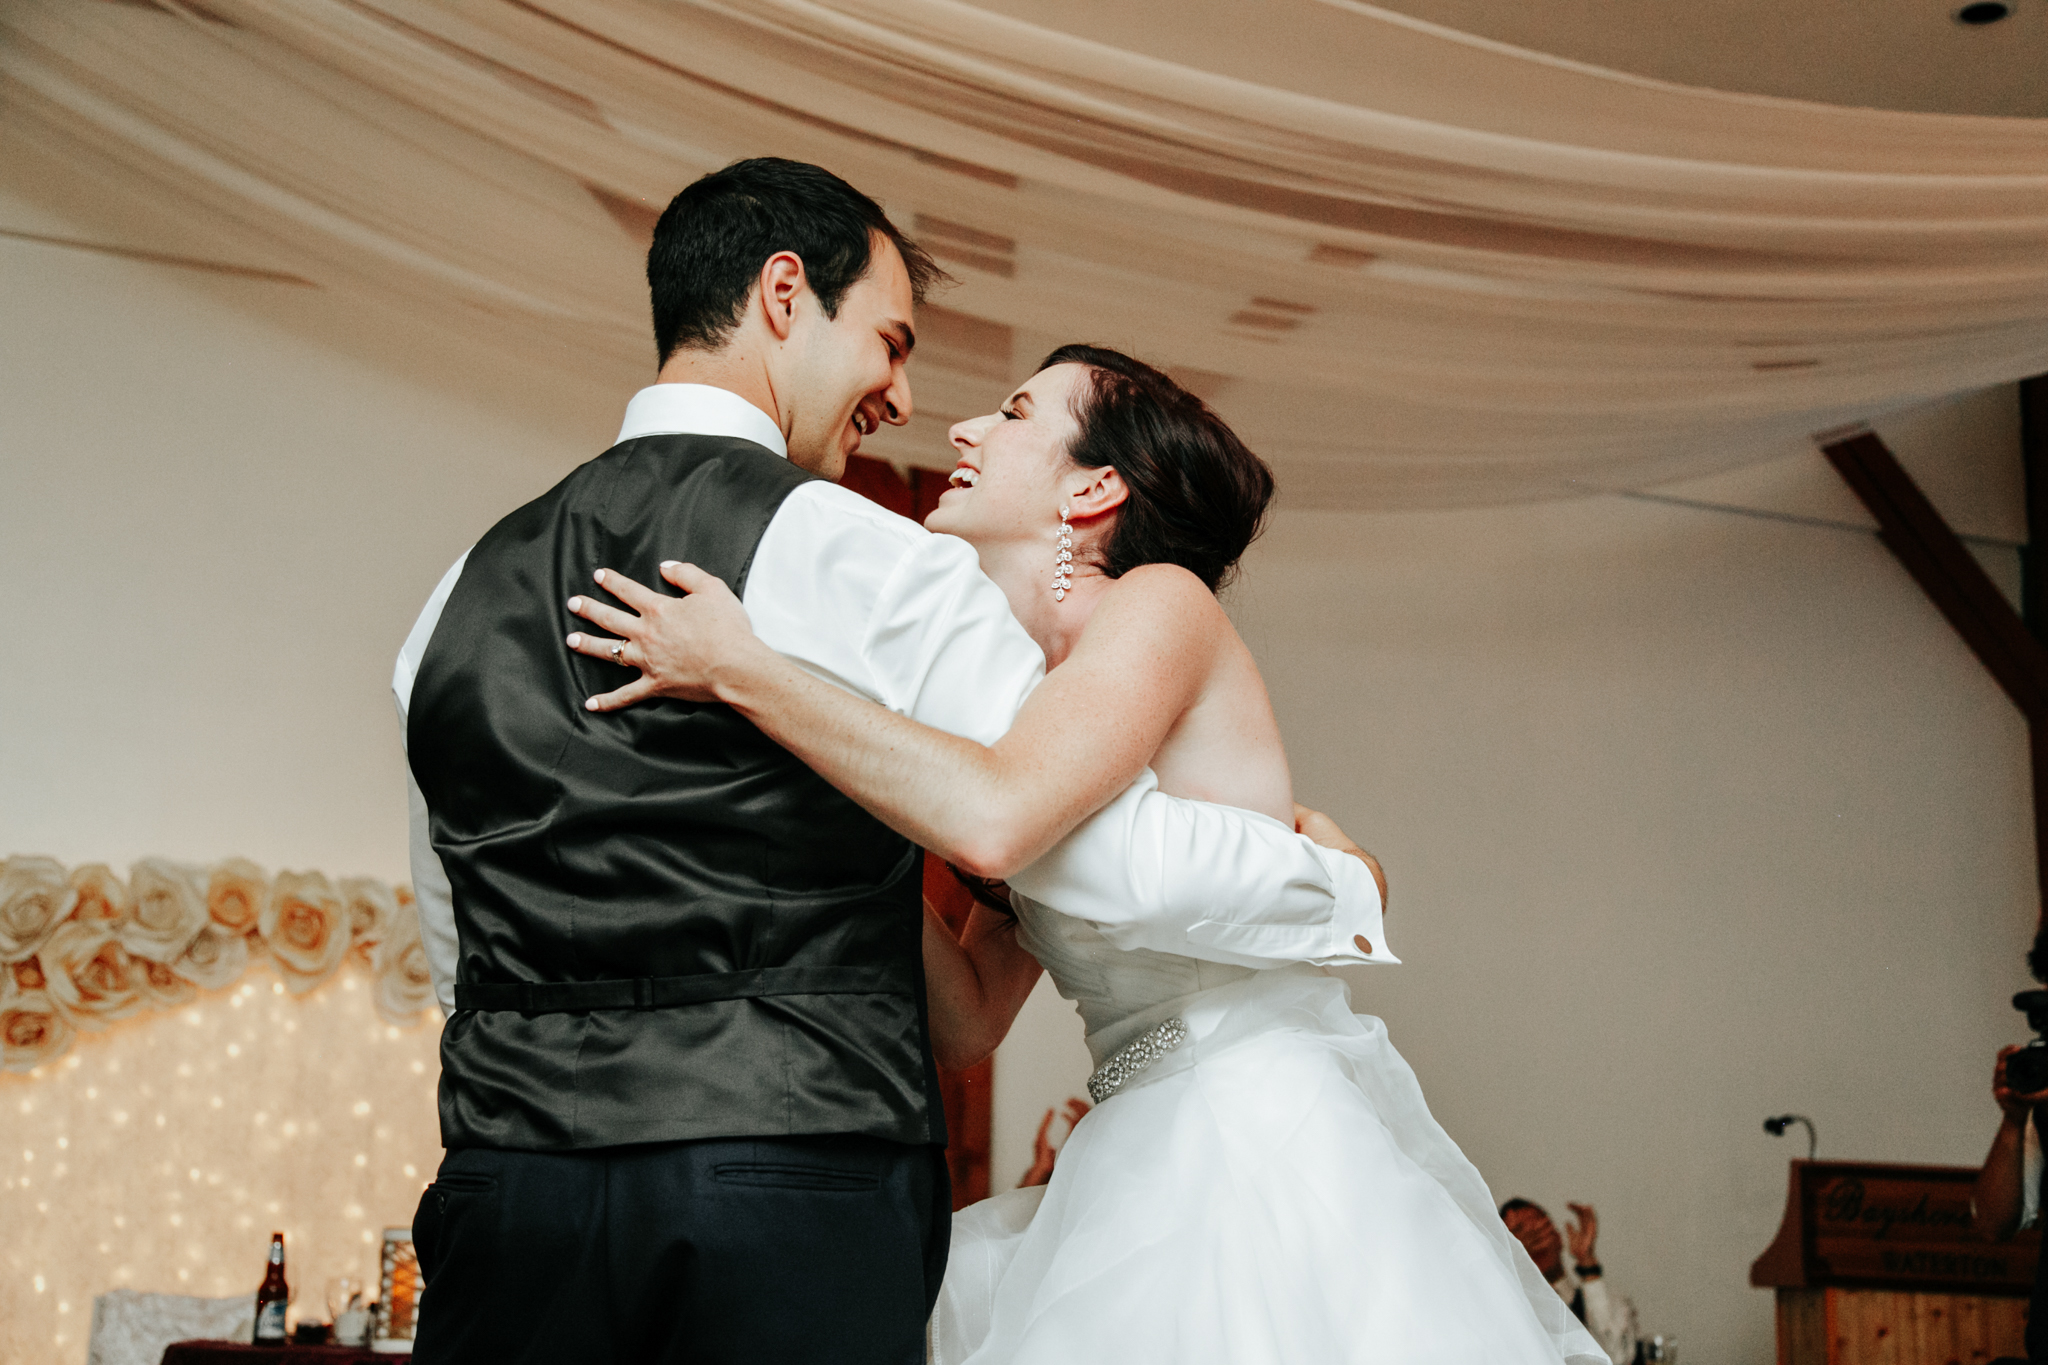 waterton-wedding-photography-love-and-be-loved-photographer-bayshore-inn-reception-image-photo-picture-31.jpg